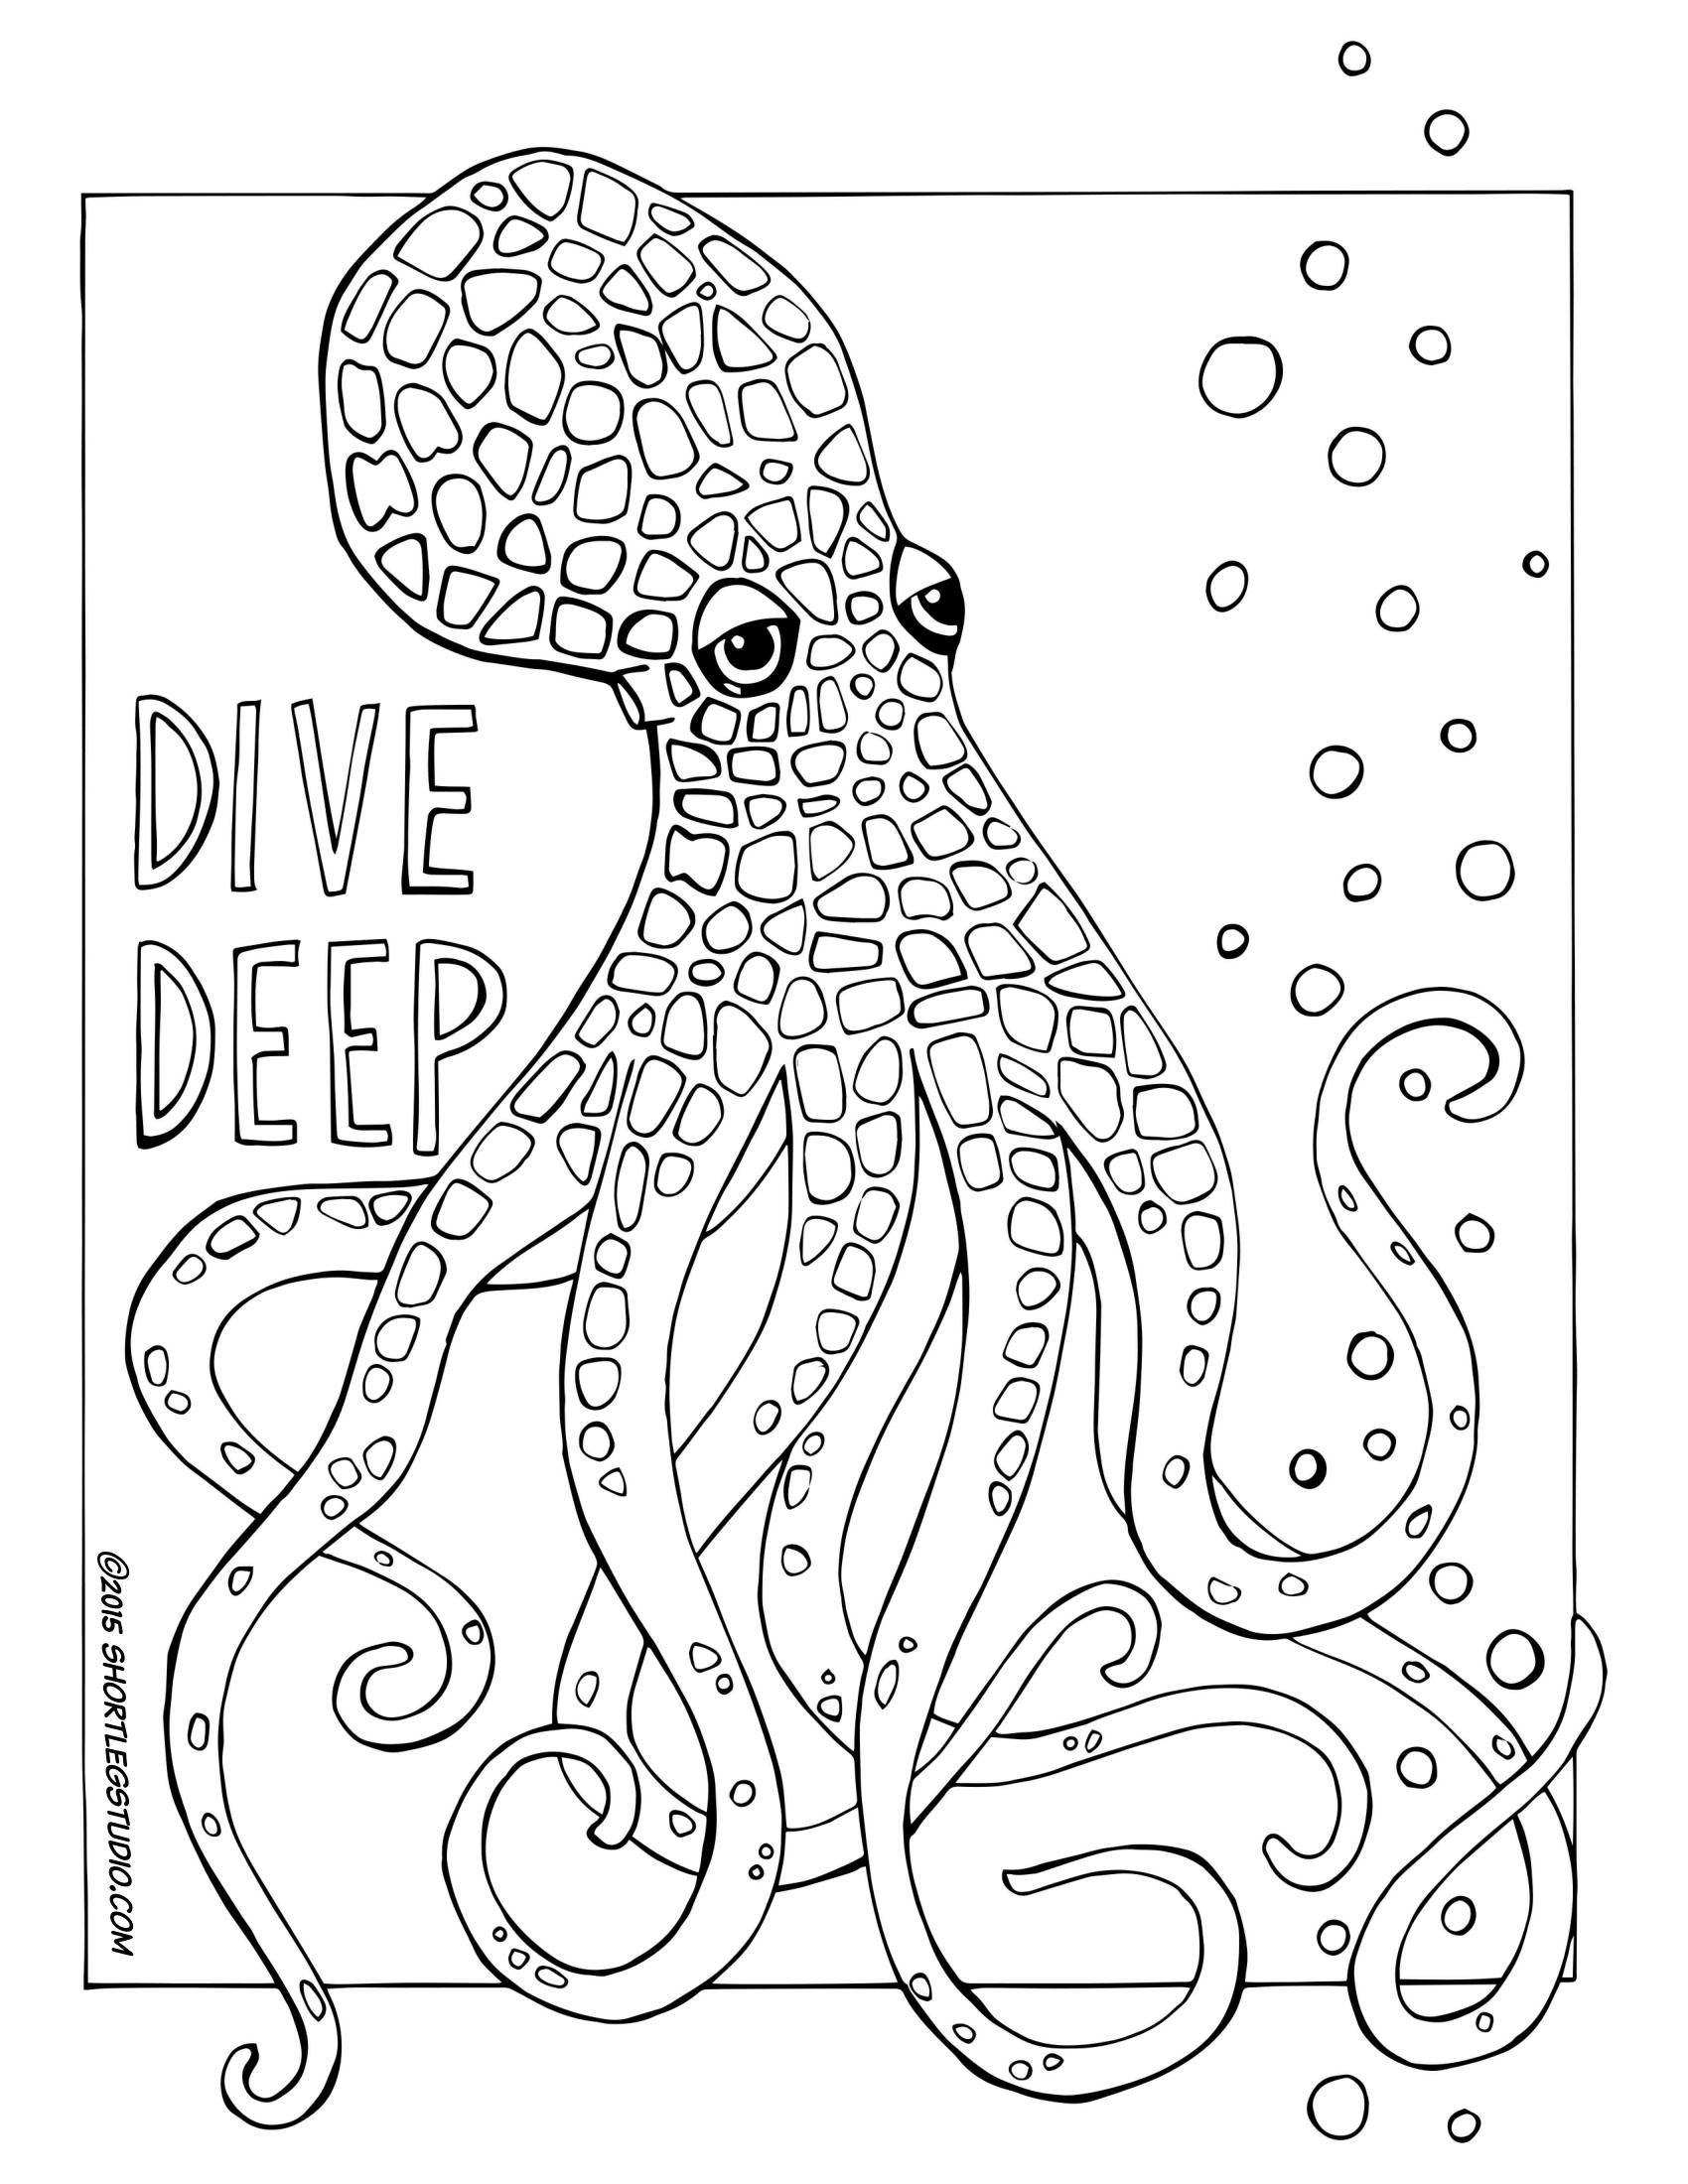 octopus coloring page for Kaia | for the kid in me | Pinterest | Eier